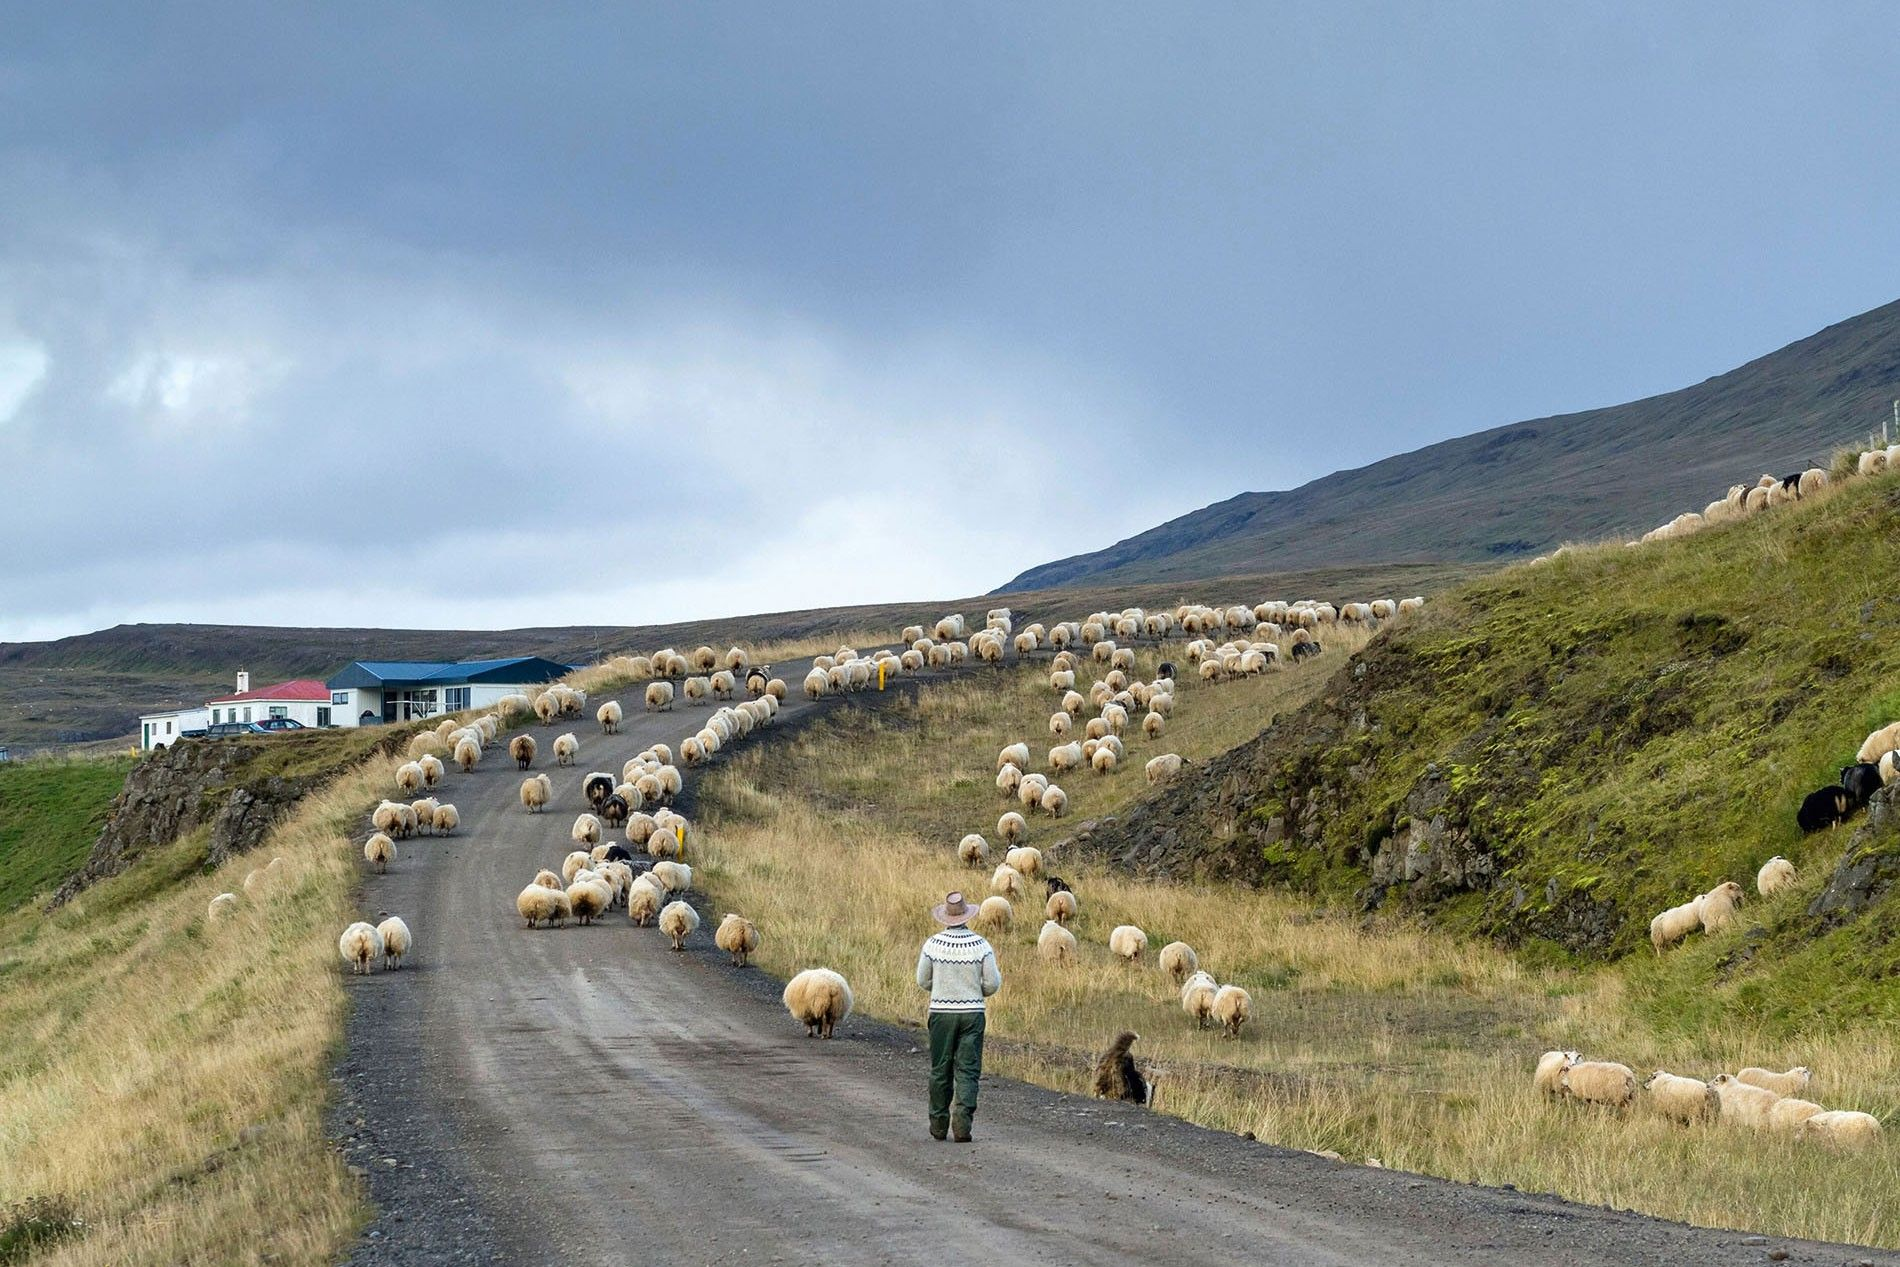 A shepherd herds his sheep down a dirt road in Vatnsnes Peninsula.